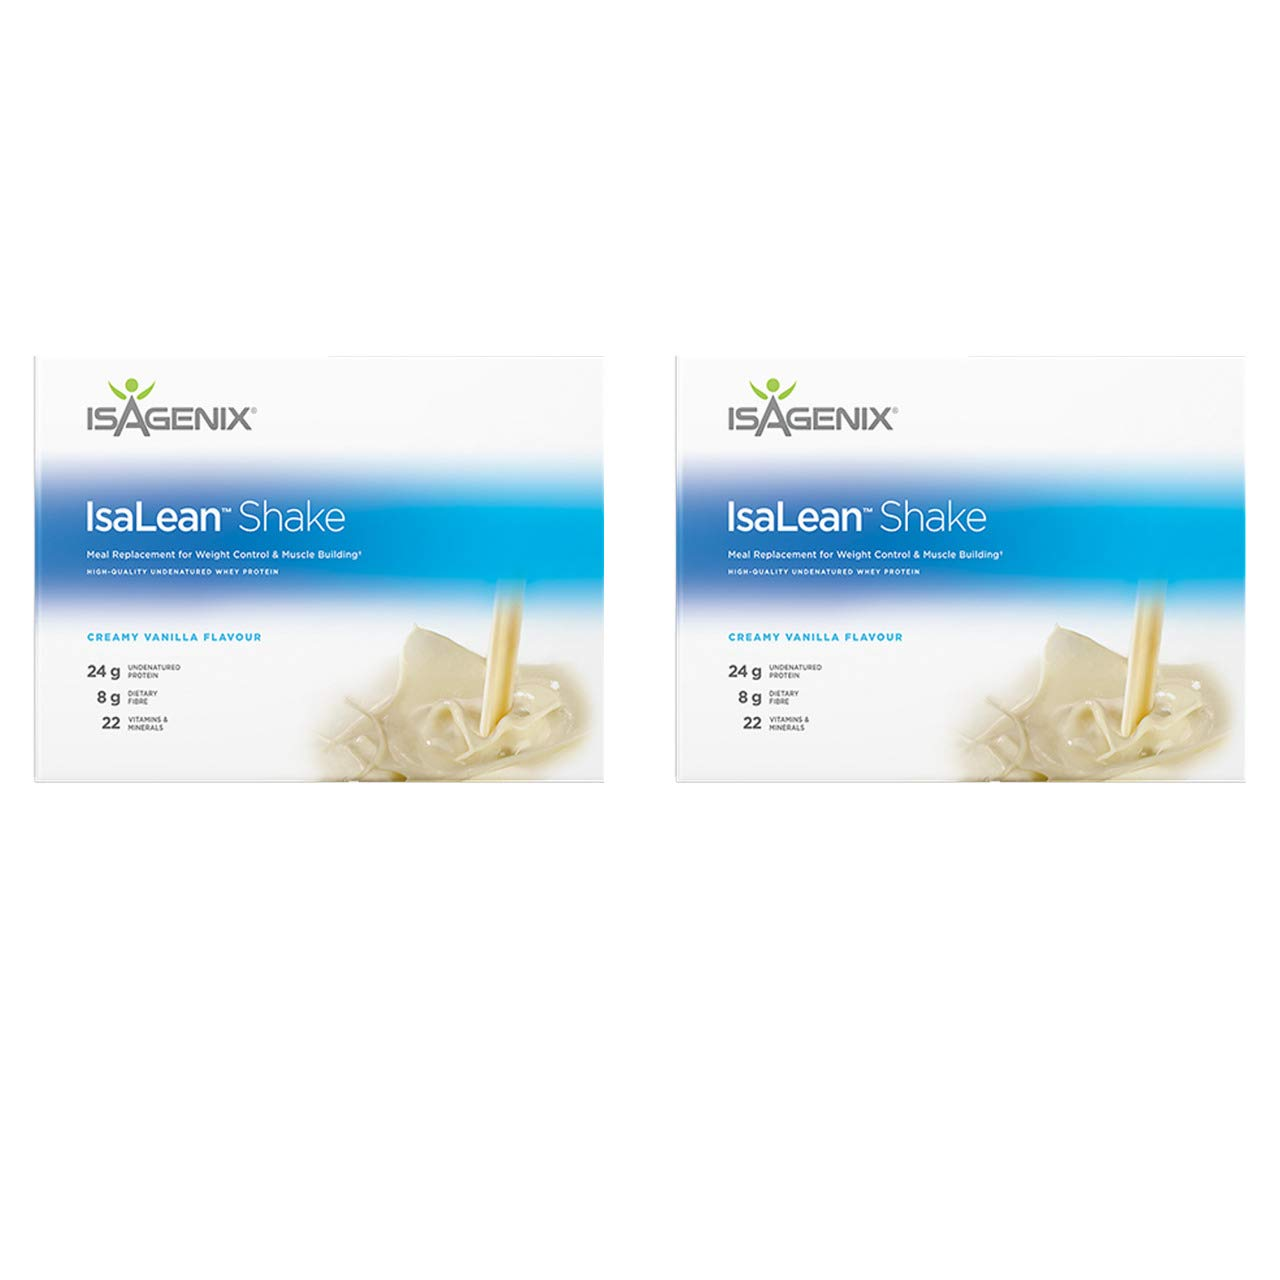 Isagenix Isalean Shake 2 Pack of Creamy French Vanilla - 28 Meal Packets X 2.1 oz, 29.6 oz (840g) (2 Pack)